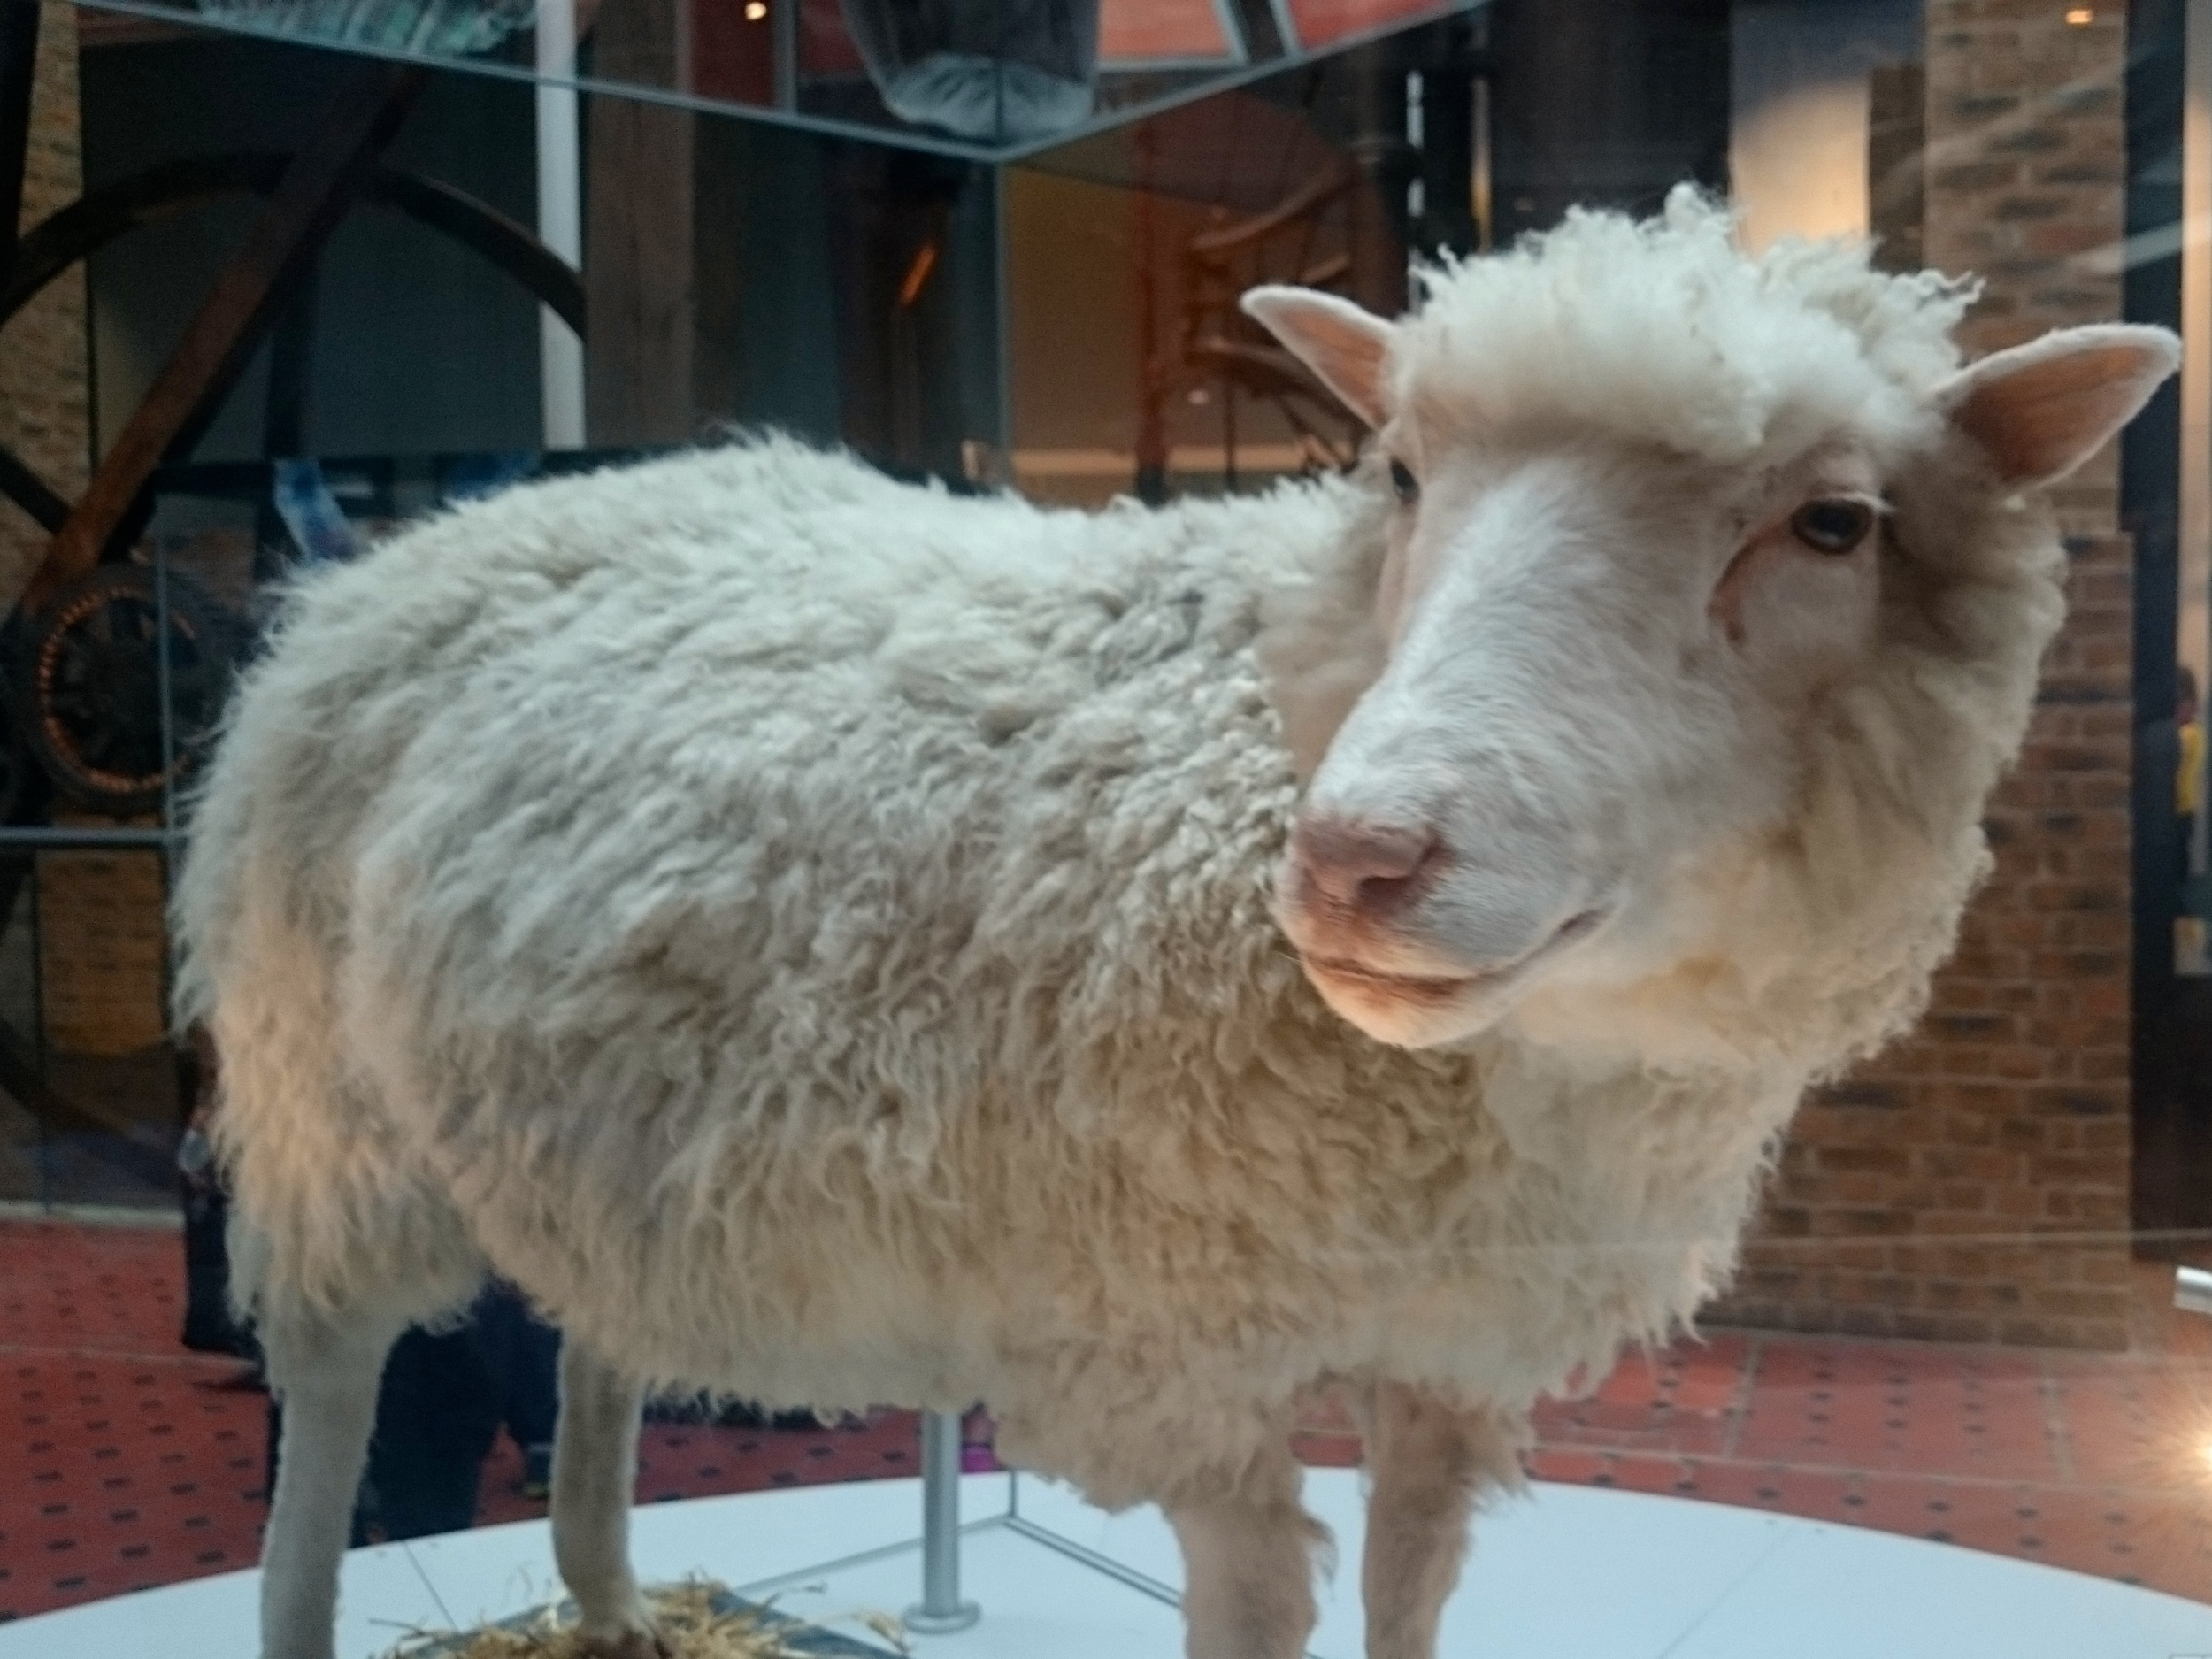 Spinning around on her podium! Dolly was gifted to the museum by the Roslin Institute, University of Edinburgh where she was the first cloned mammal ever to be created from an adult cell. She's kind of a big deal.